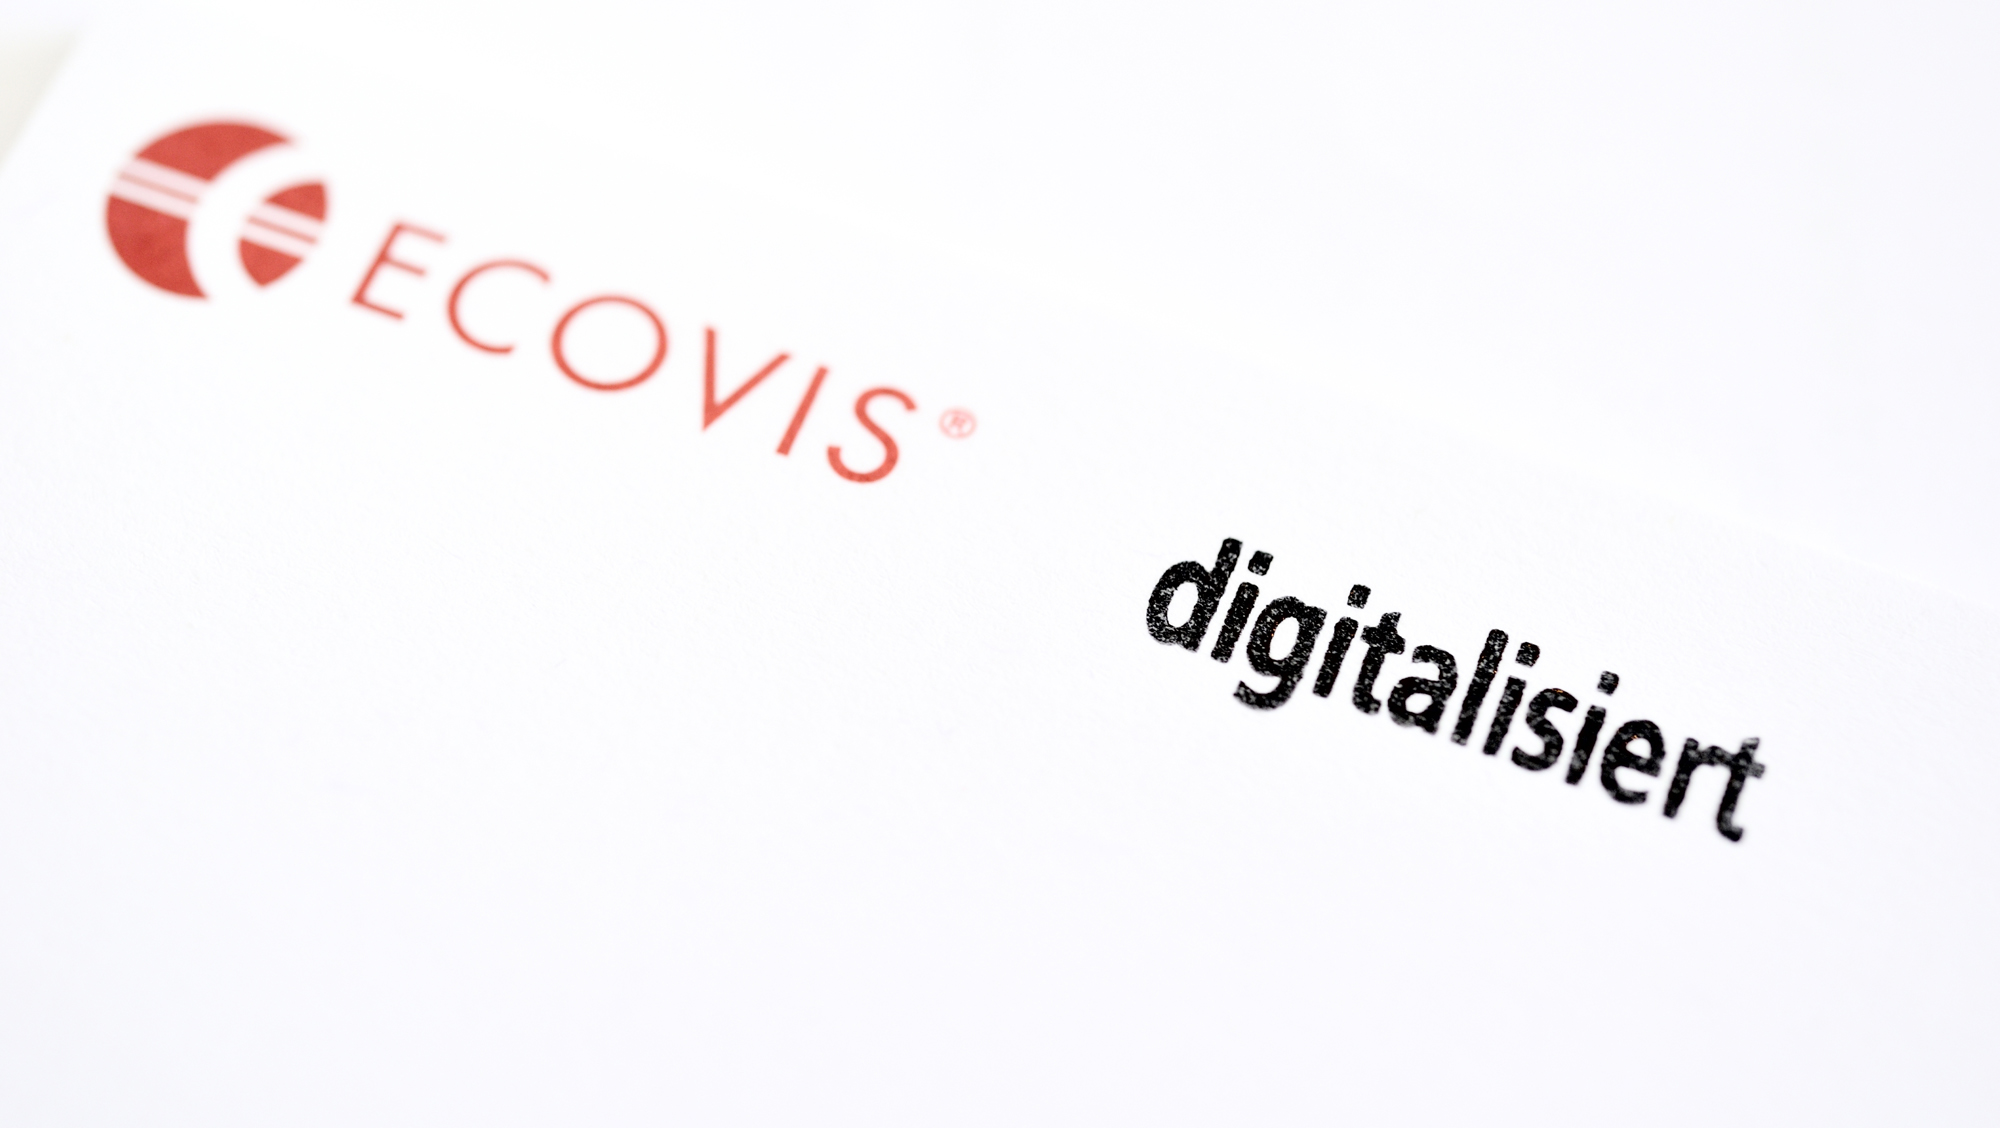 From ECOVIS Network: New Regulations in Turkey for Electronic Document Schemes